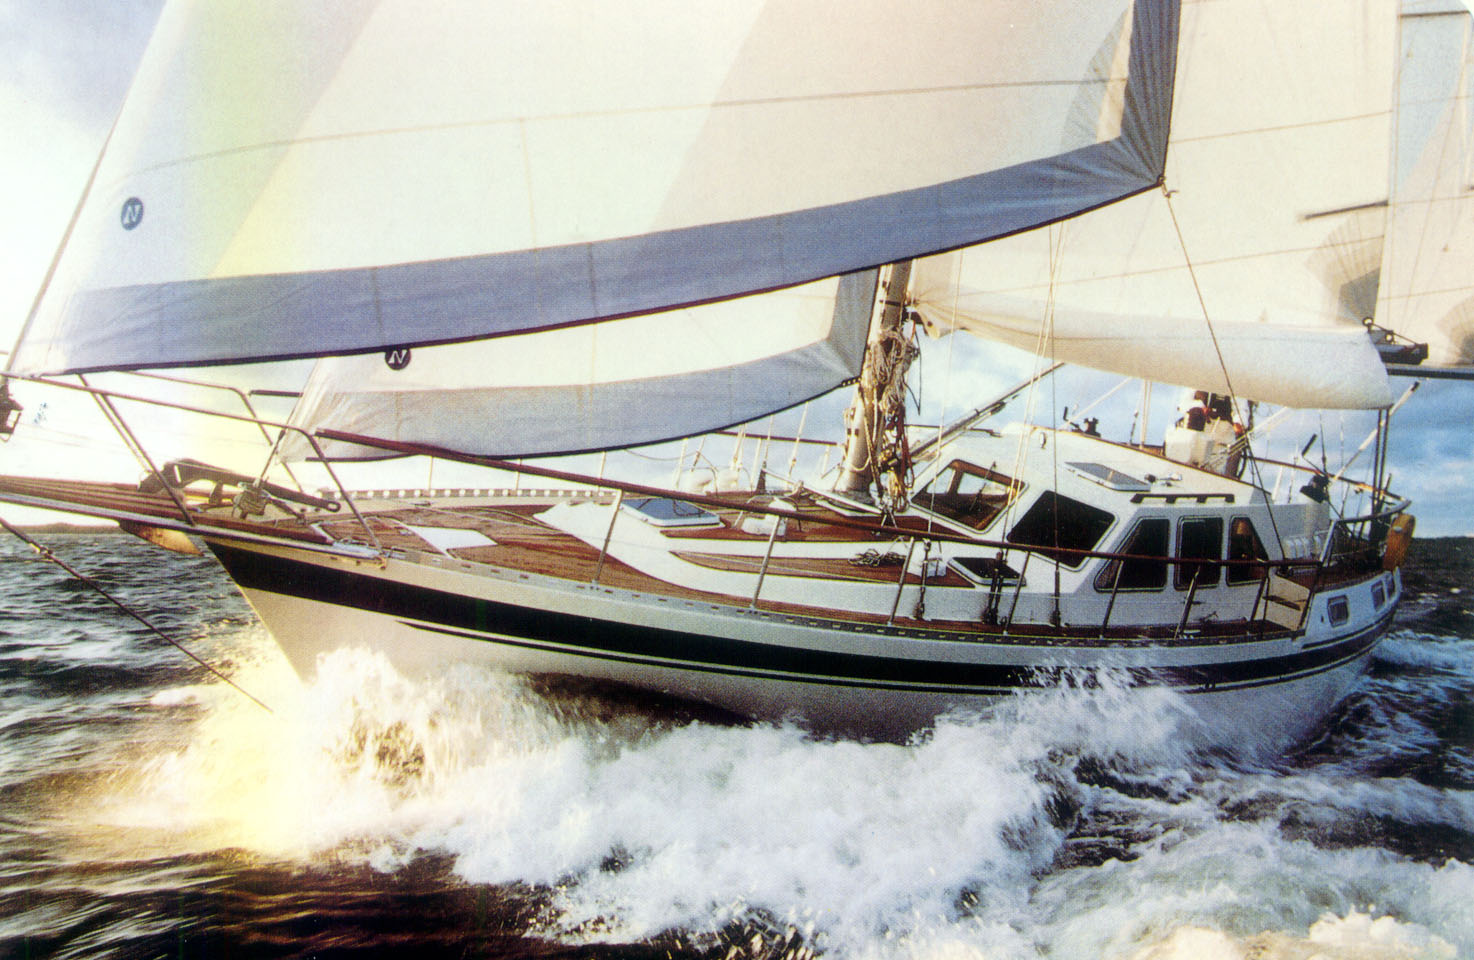 Manufacturer boat data , Yachts for sale - Used Boats for